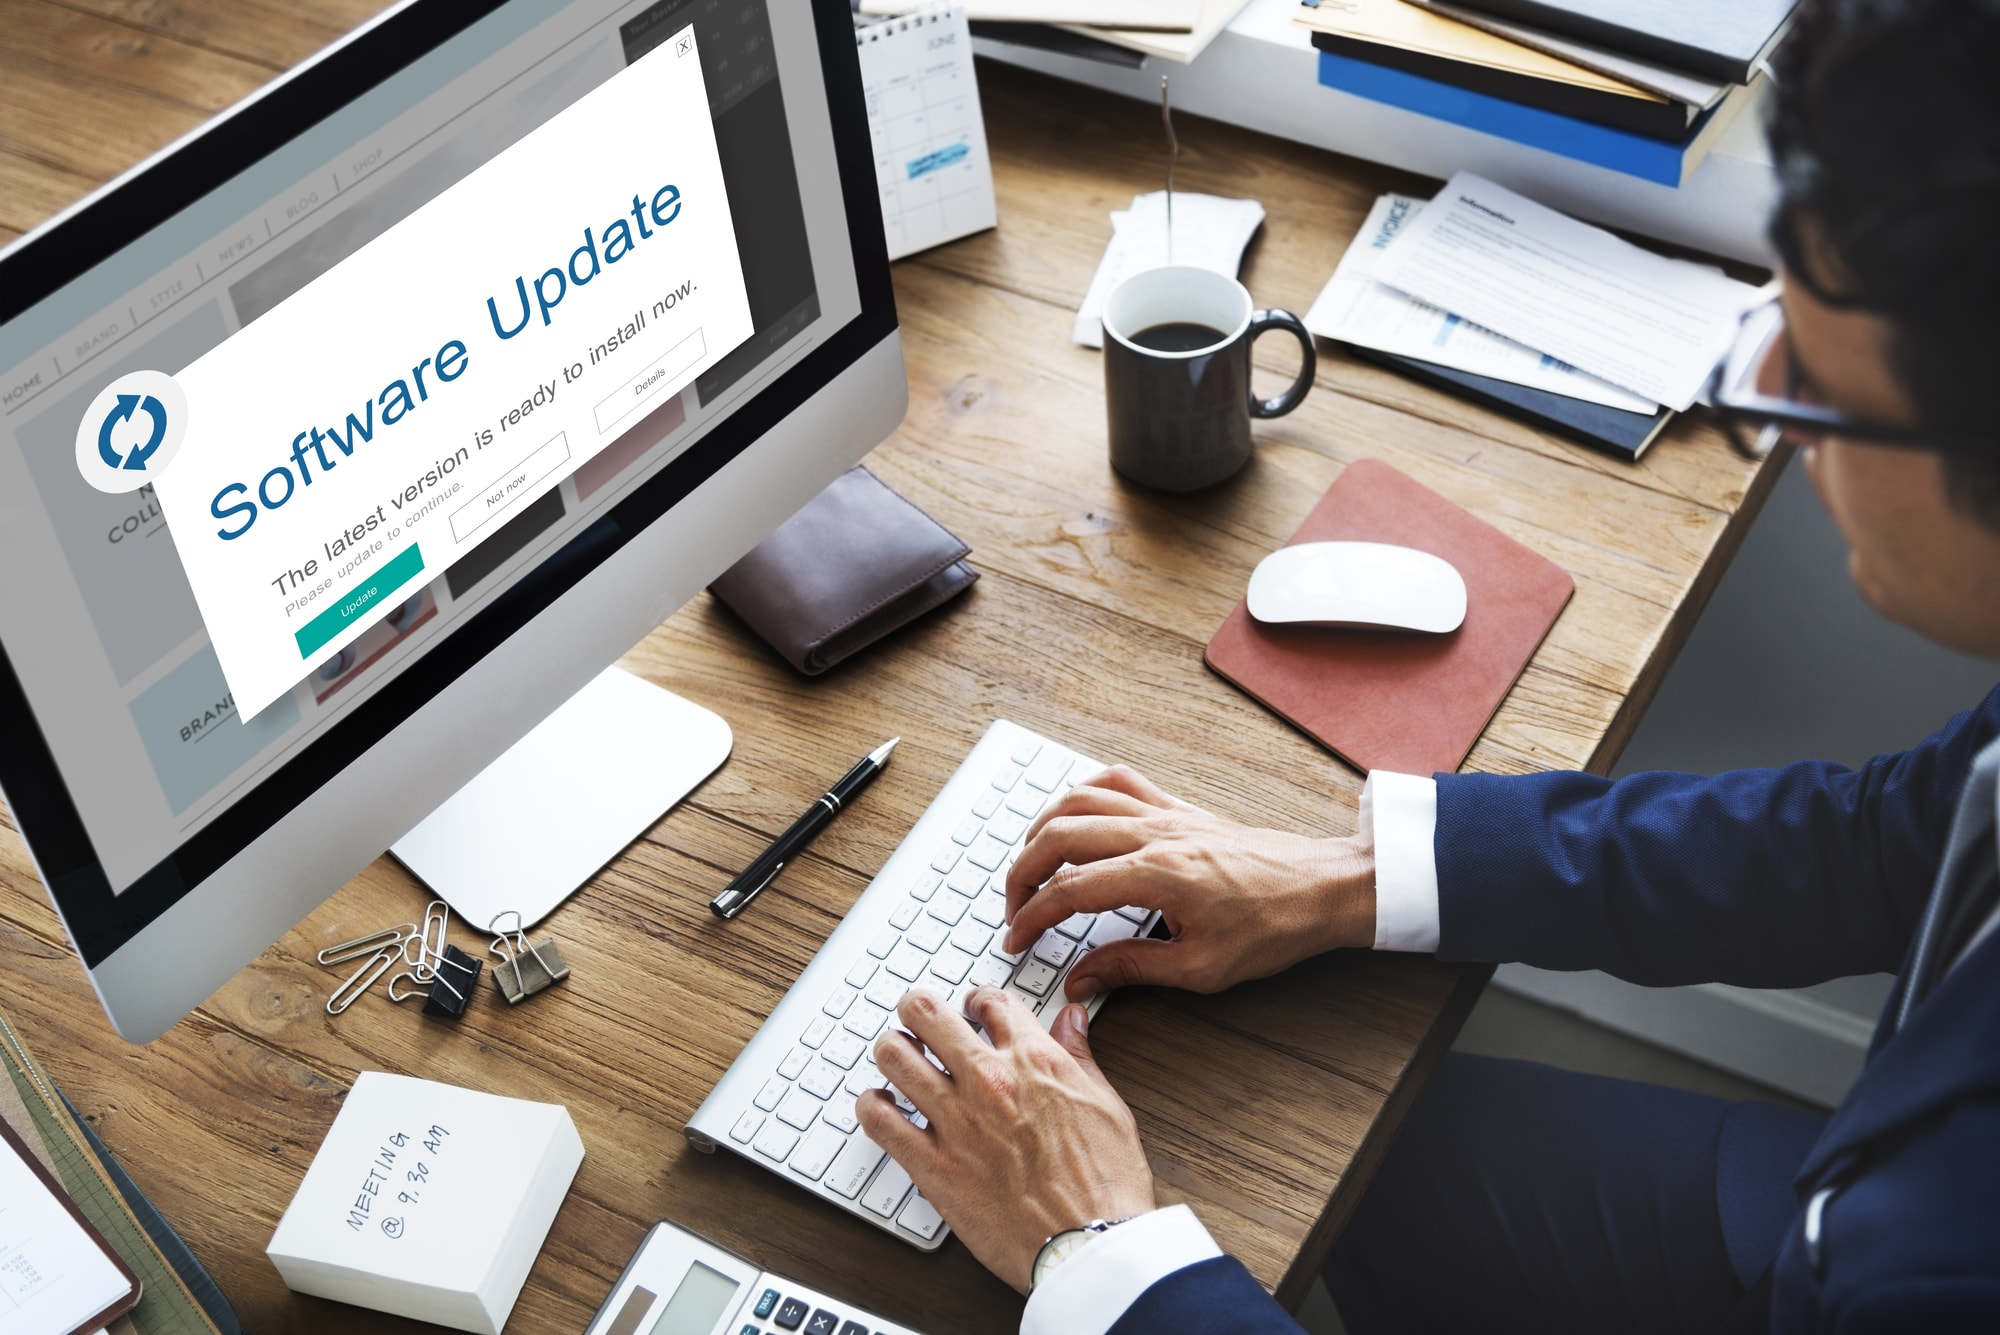 5 Tips for Upgrading Your Business Software with as Few Growing Pains as Possible